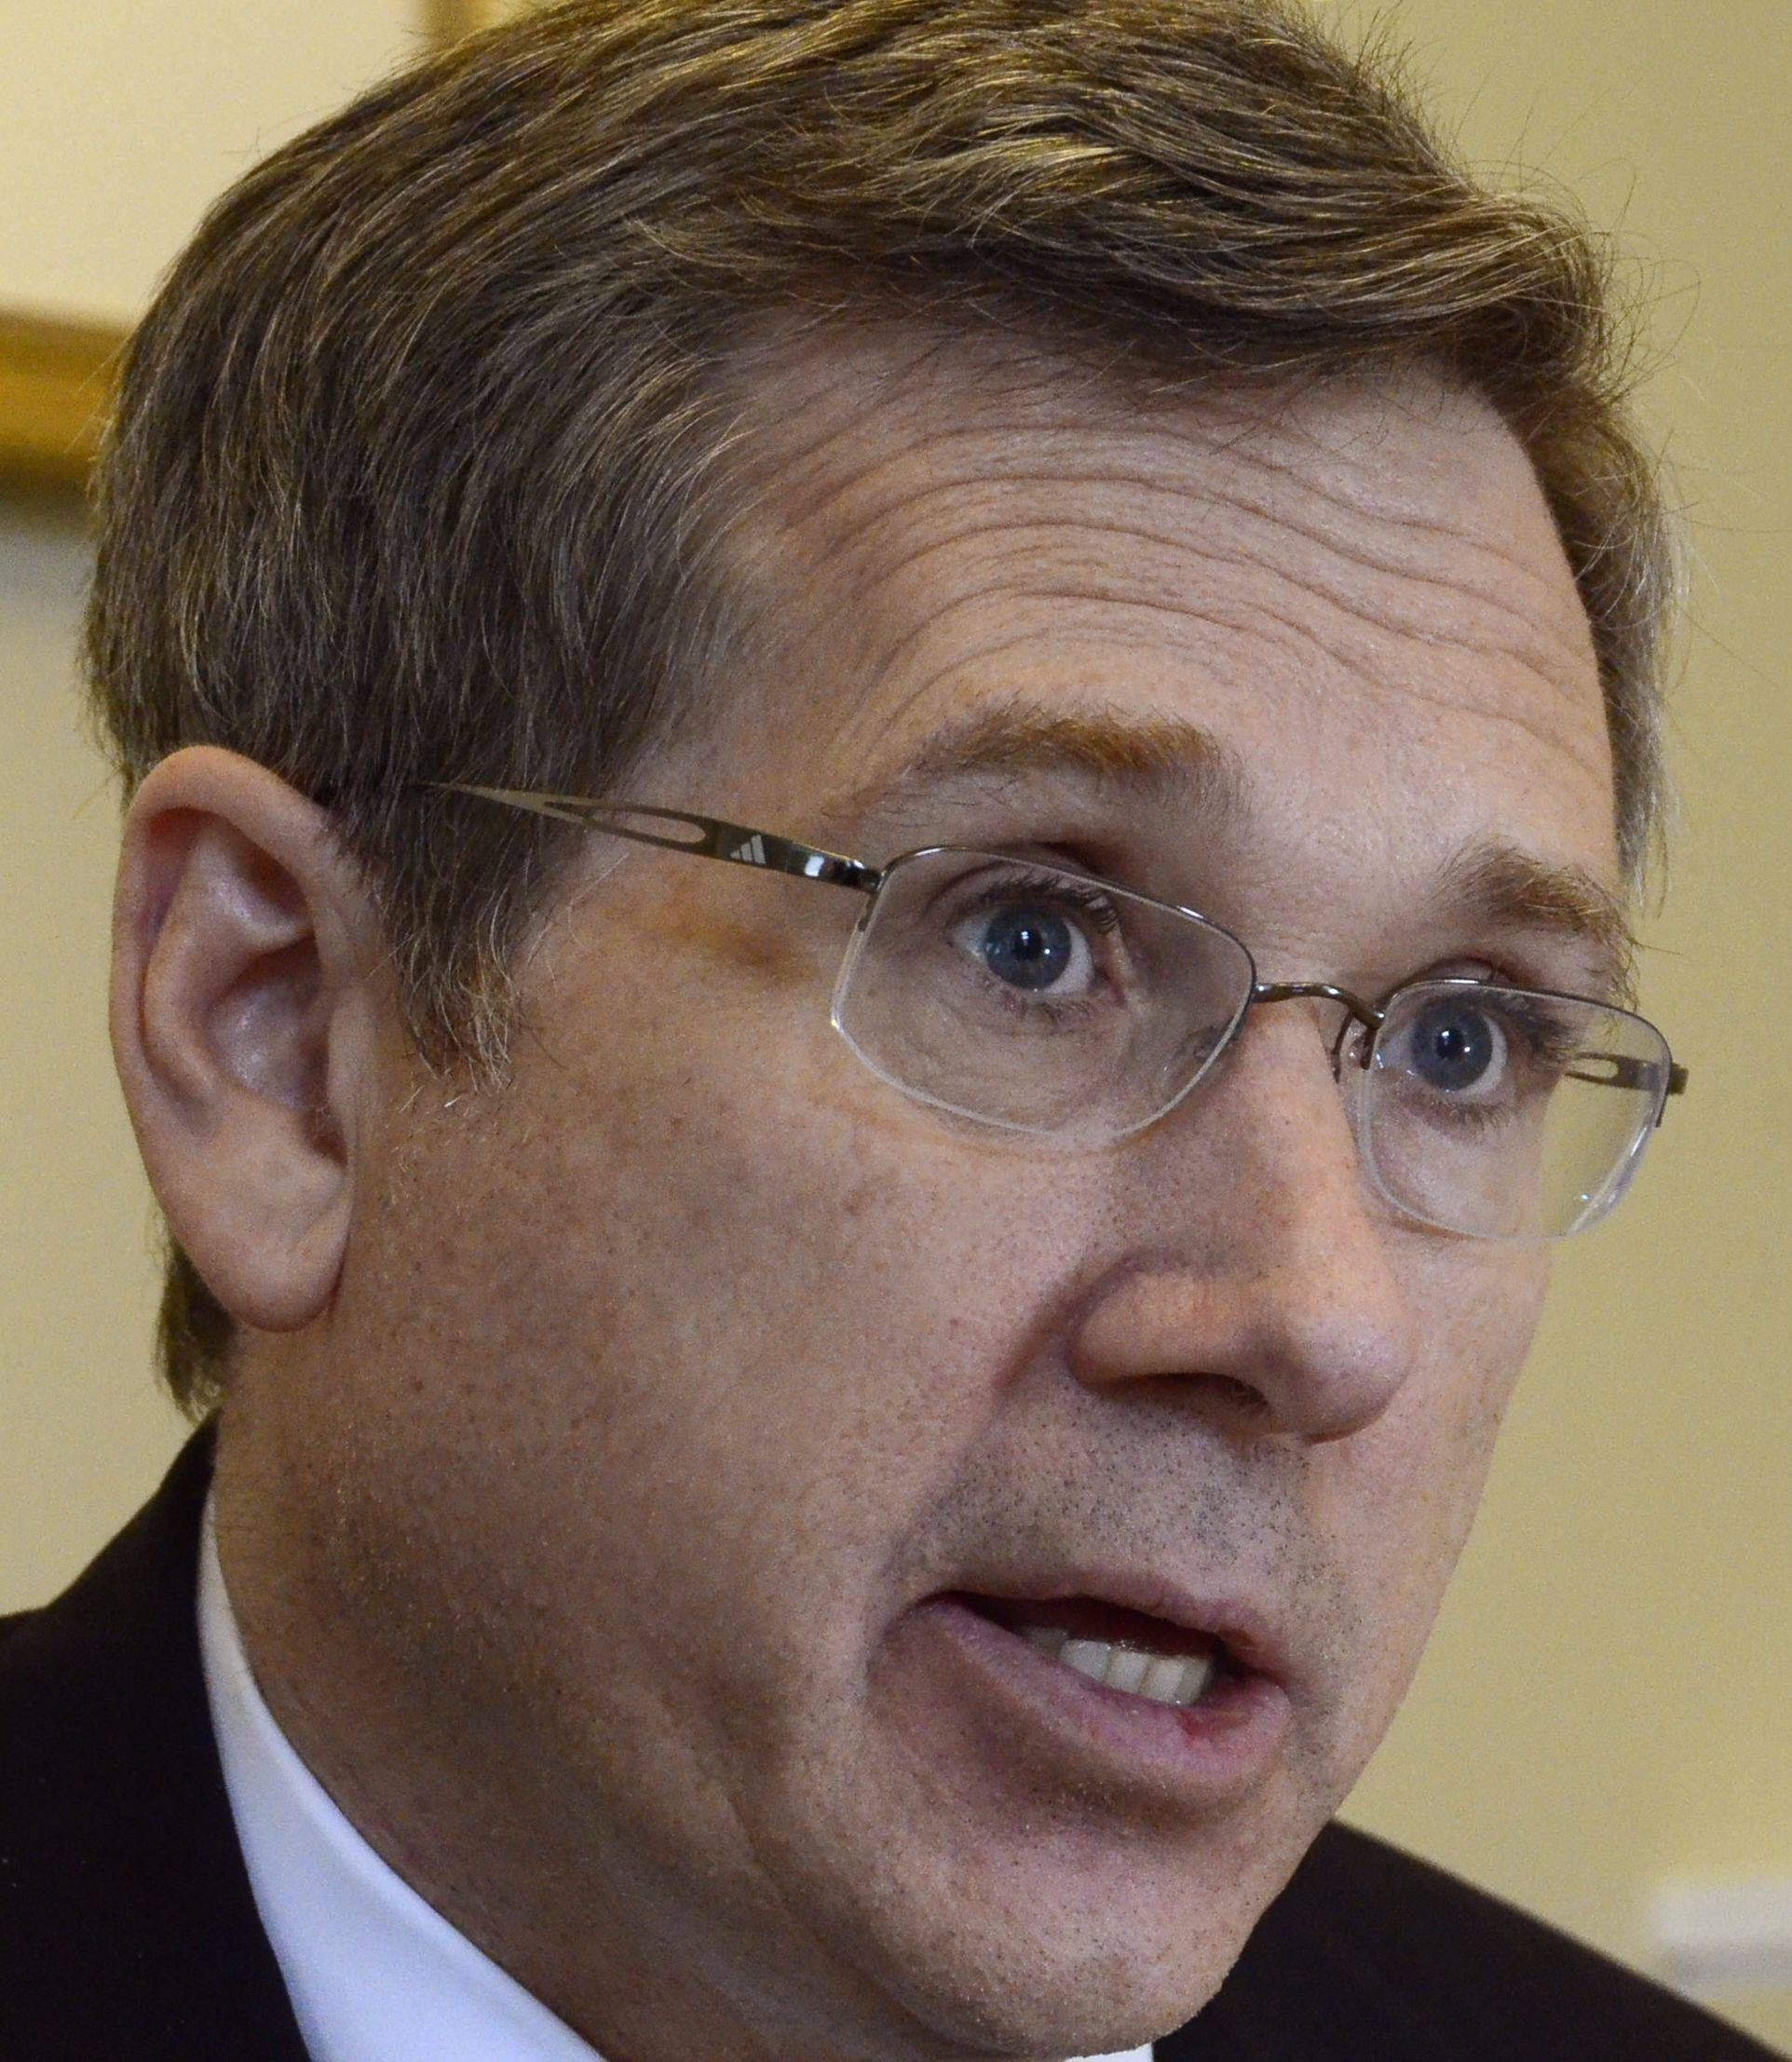 Senator Mark Kirk talks about his recovery from an ischemic stroke and returning to the U.S. Senate.